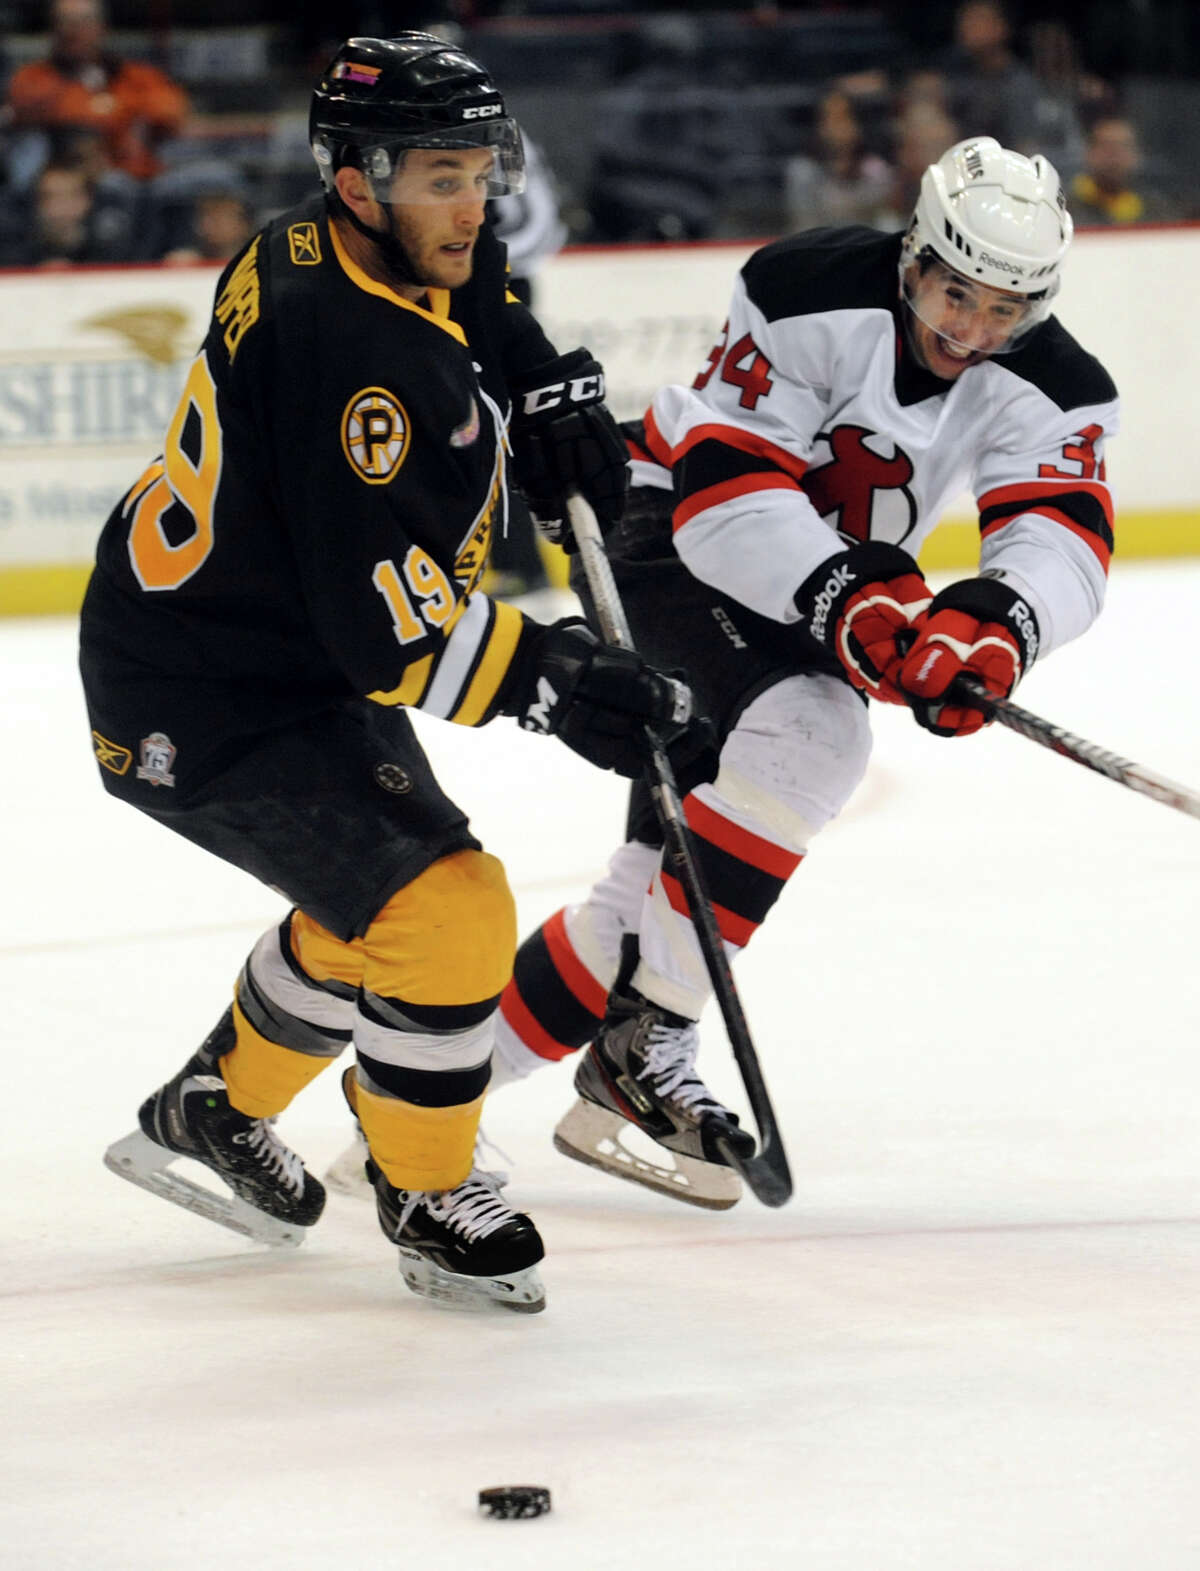 Devils' Phil DeSimone, right, battles Bruins' Carter Camper during their hockey game on Friday, April 5, 2013, at Times Union Center in Albany, N.Y. (Cindy Schultz / Times Union) 18, 12, 5